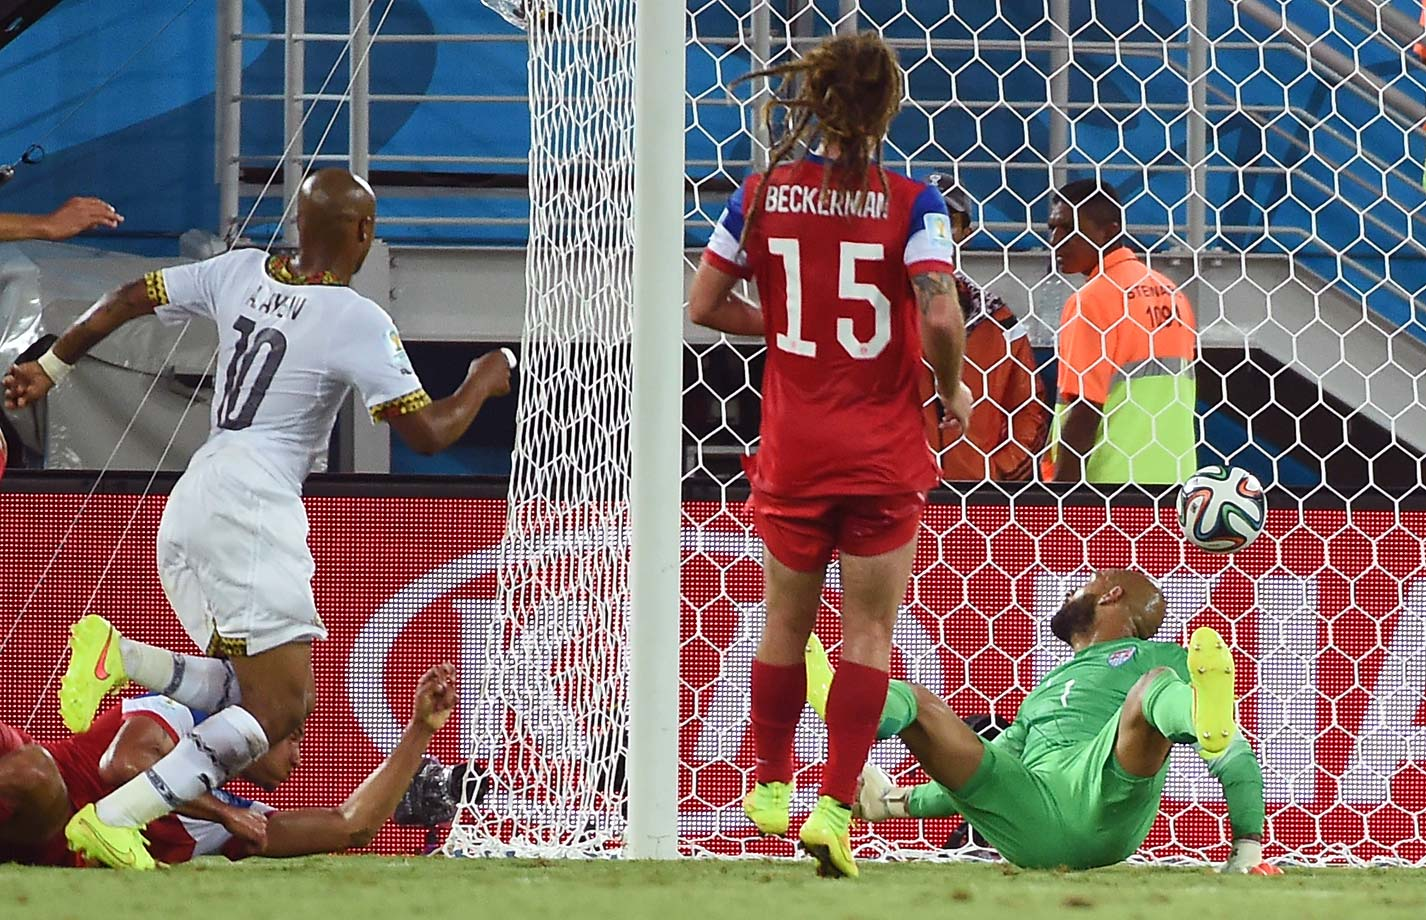 Ghana's Andre Ayew tied the match in the 82nd minute.